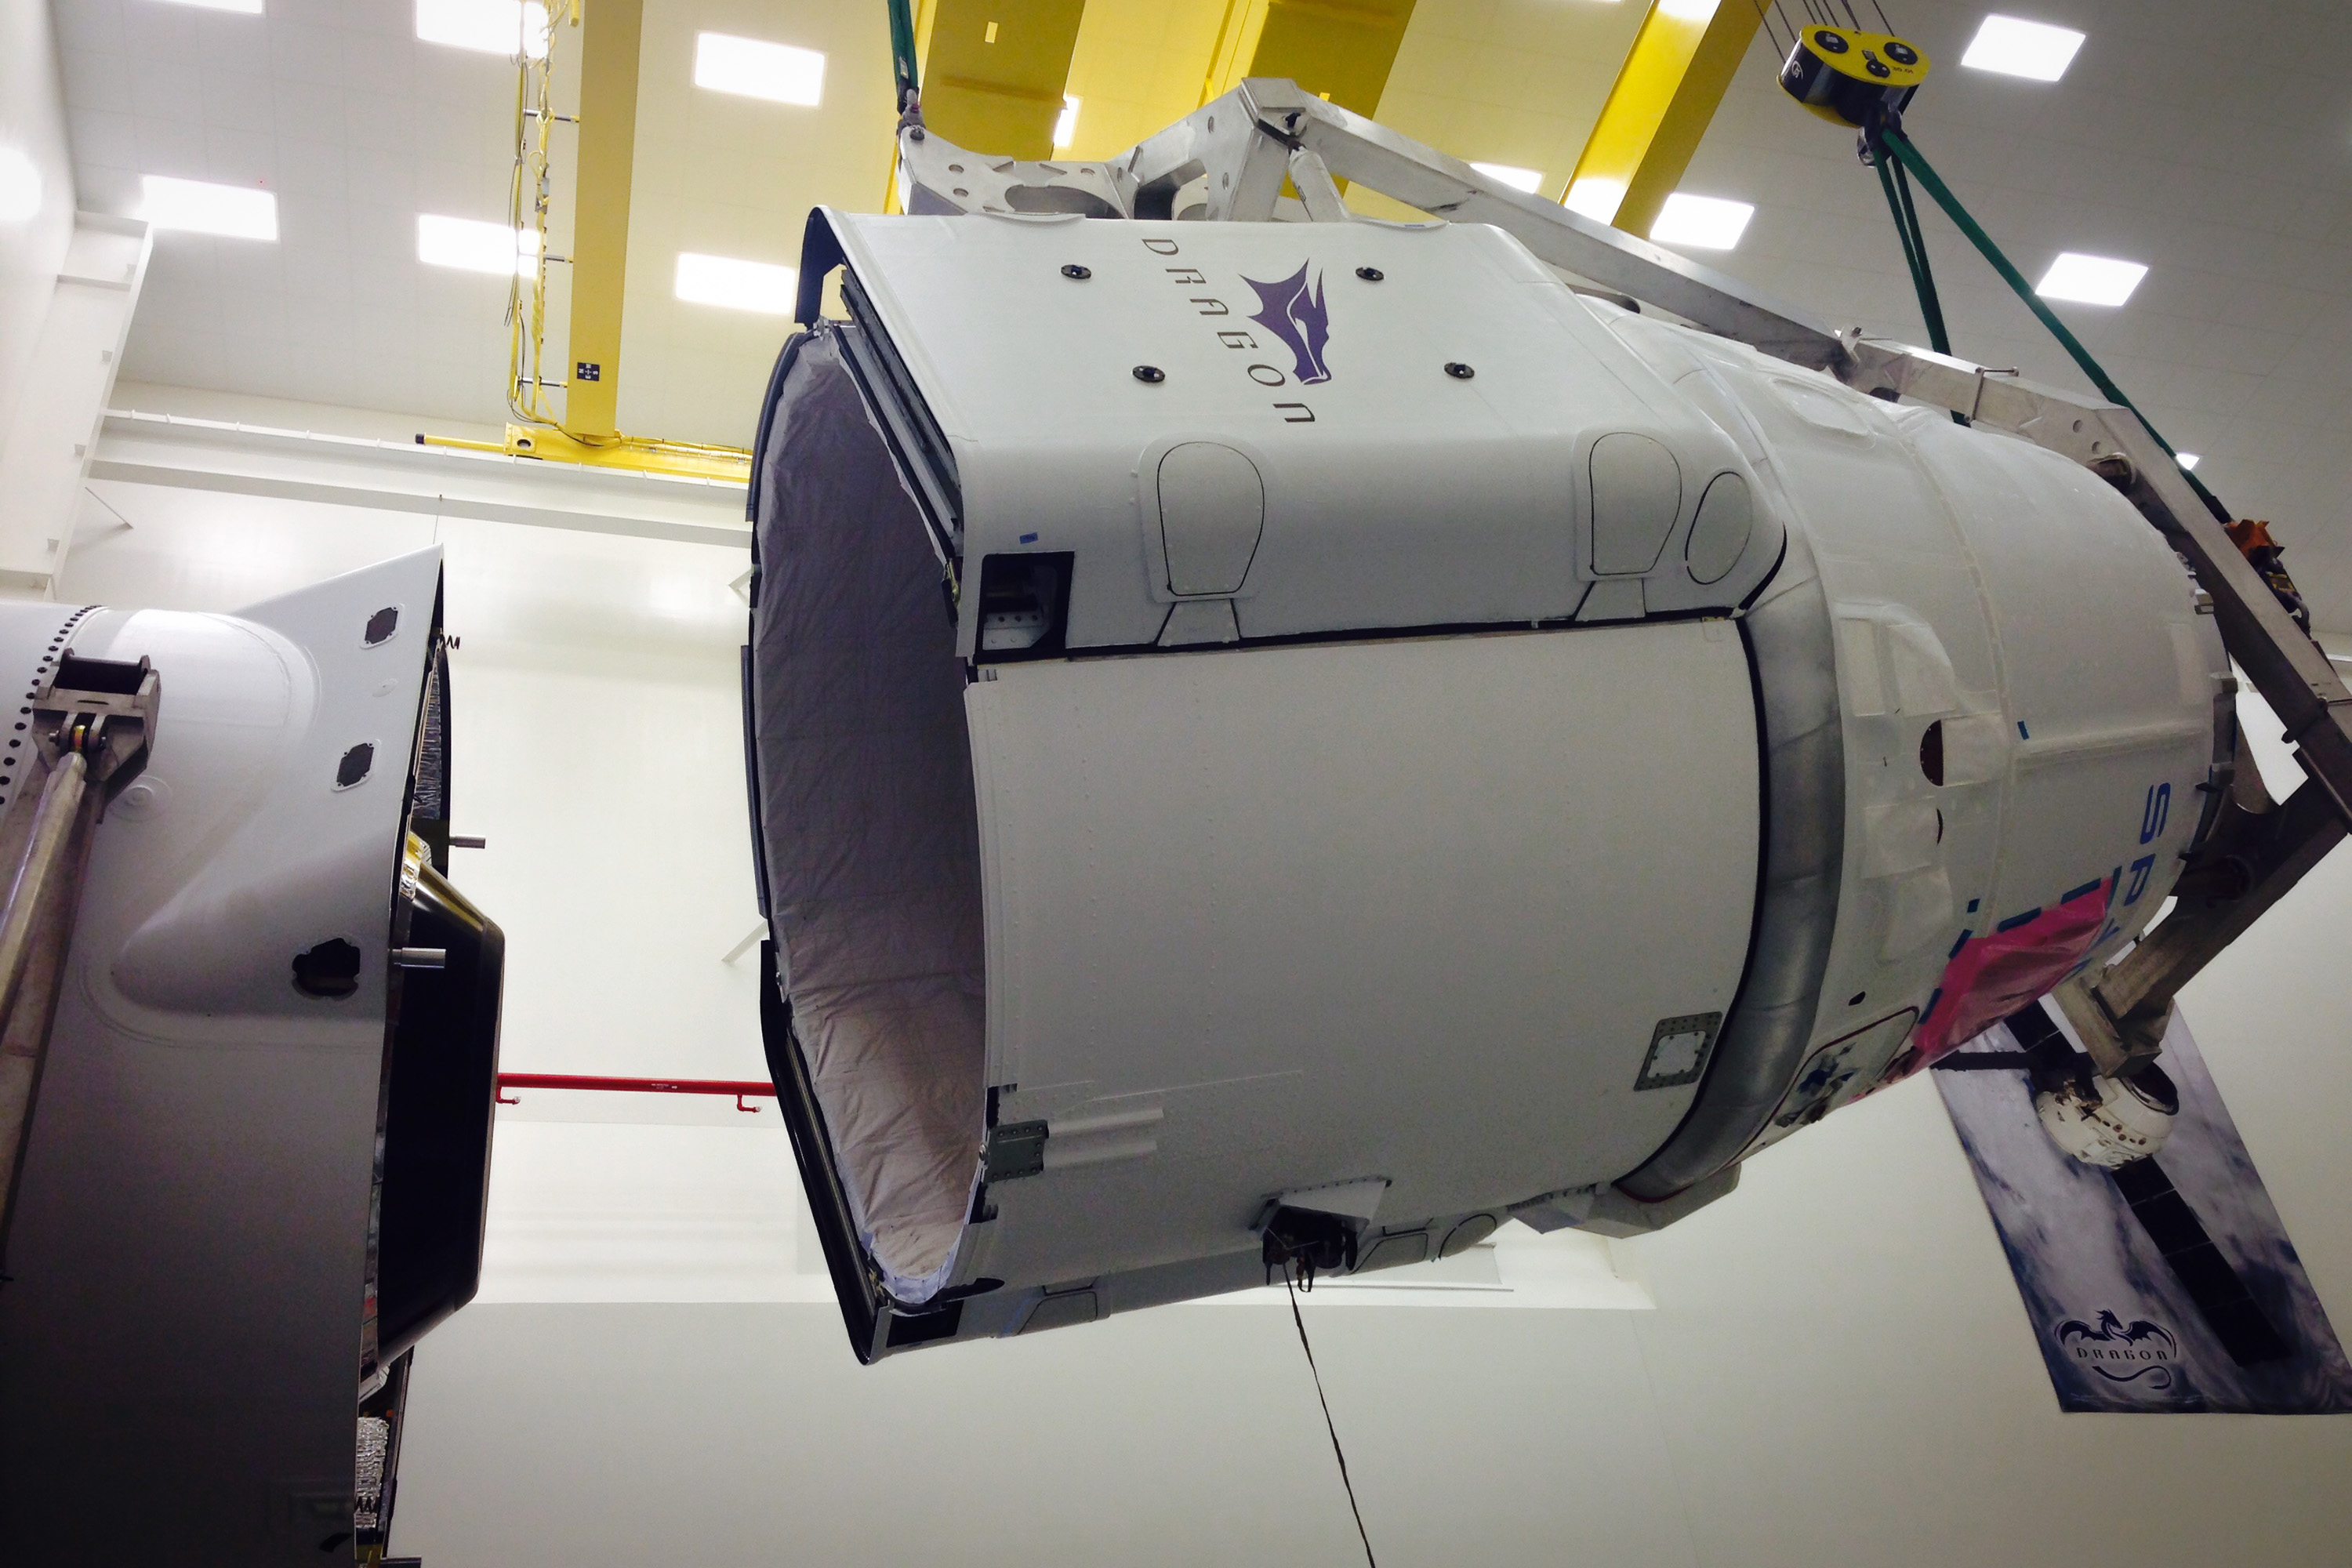 CRS-6 mating (SpaceX)